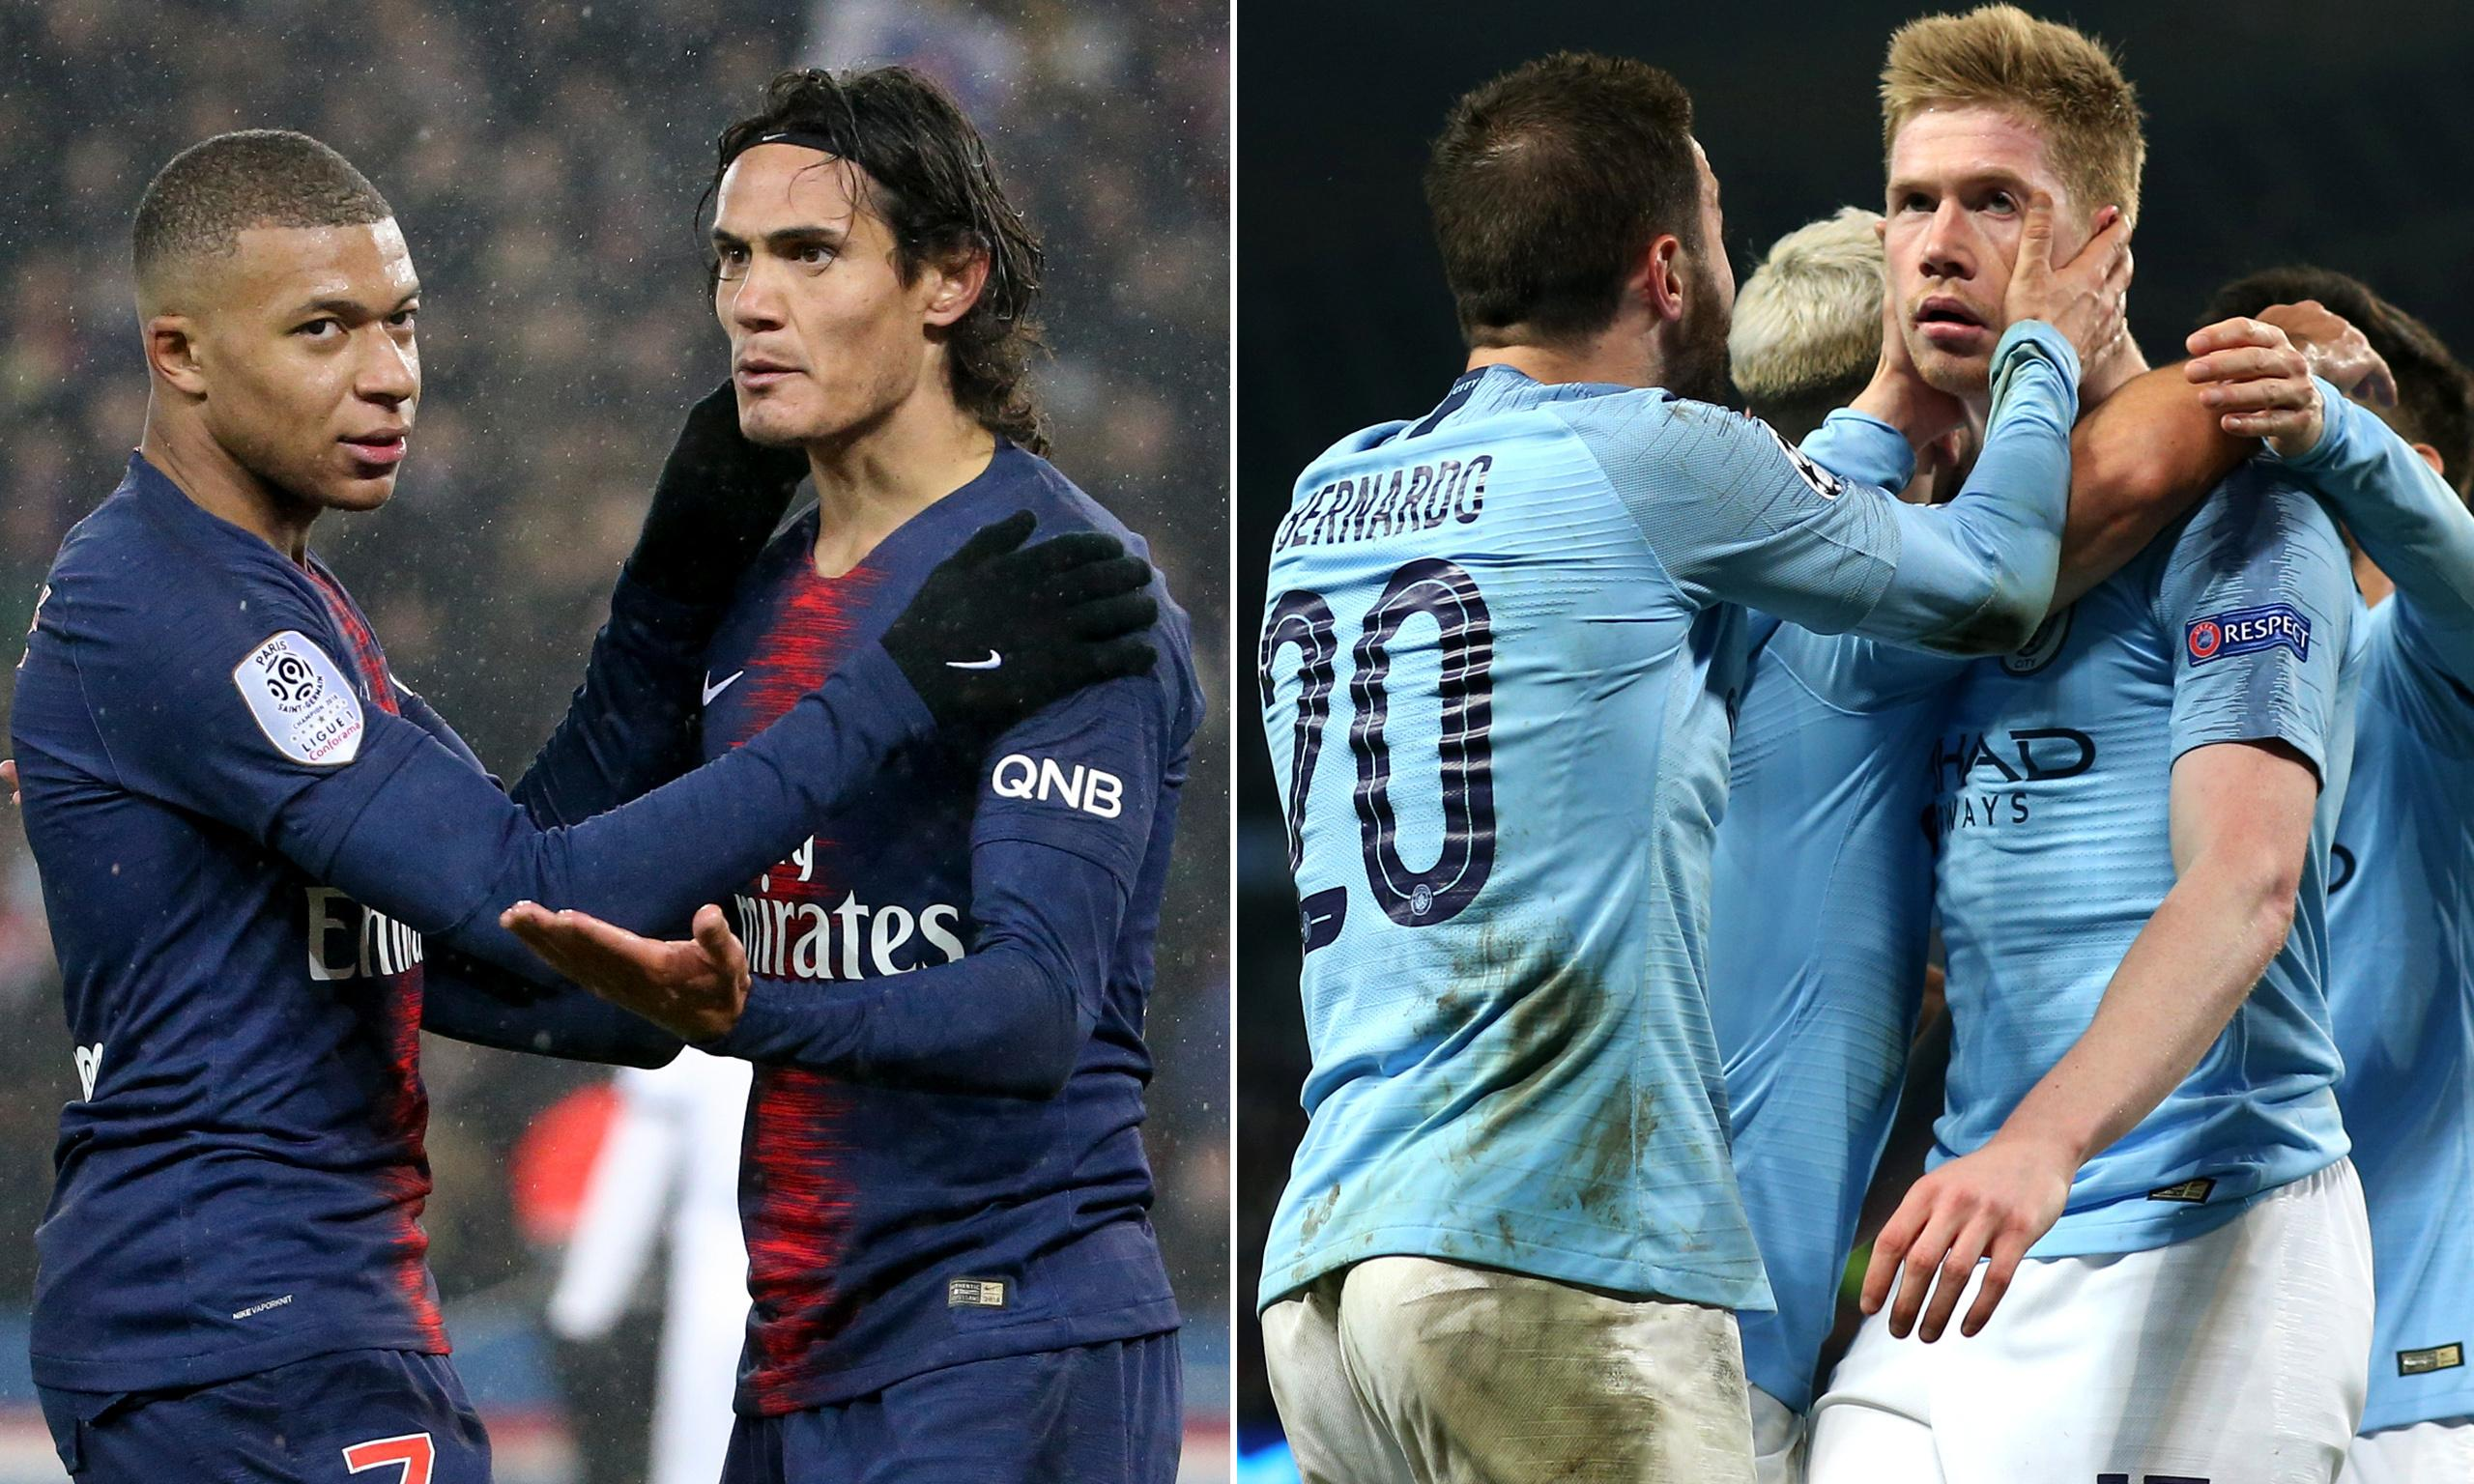 Manchester City and PSG should be thrown out of Europe, says La Liga president